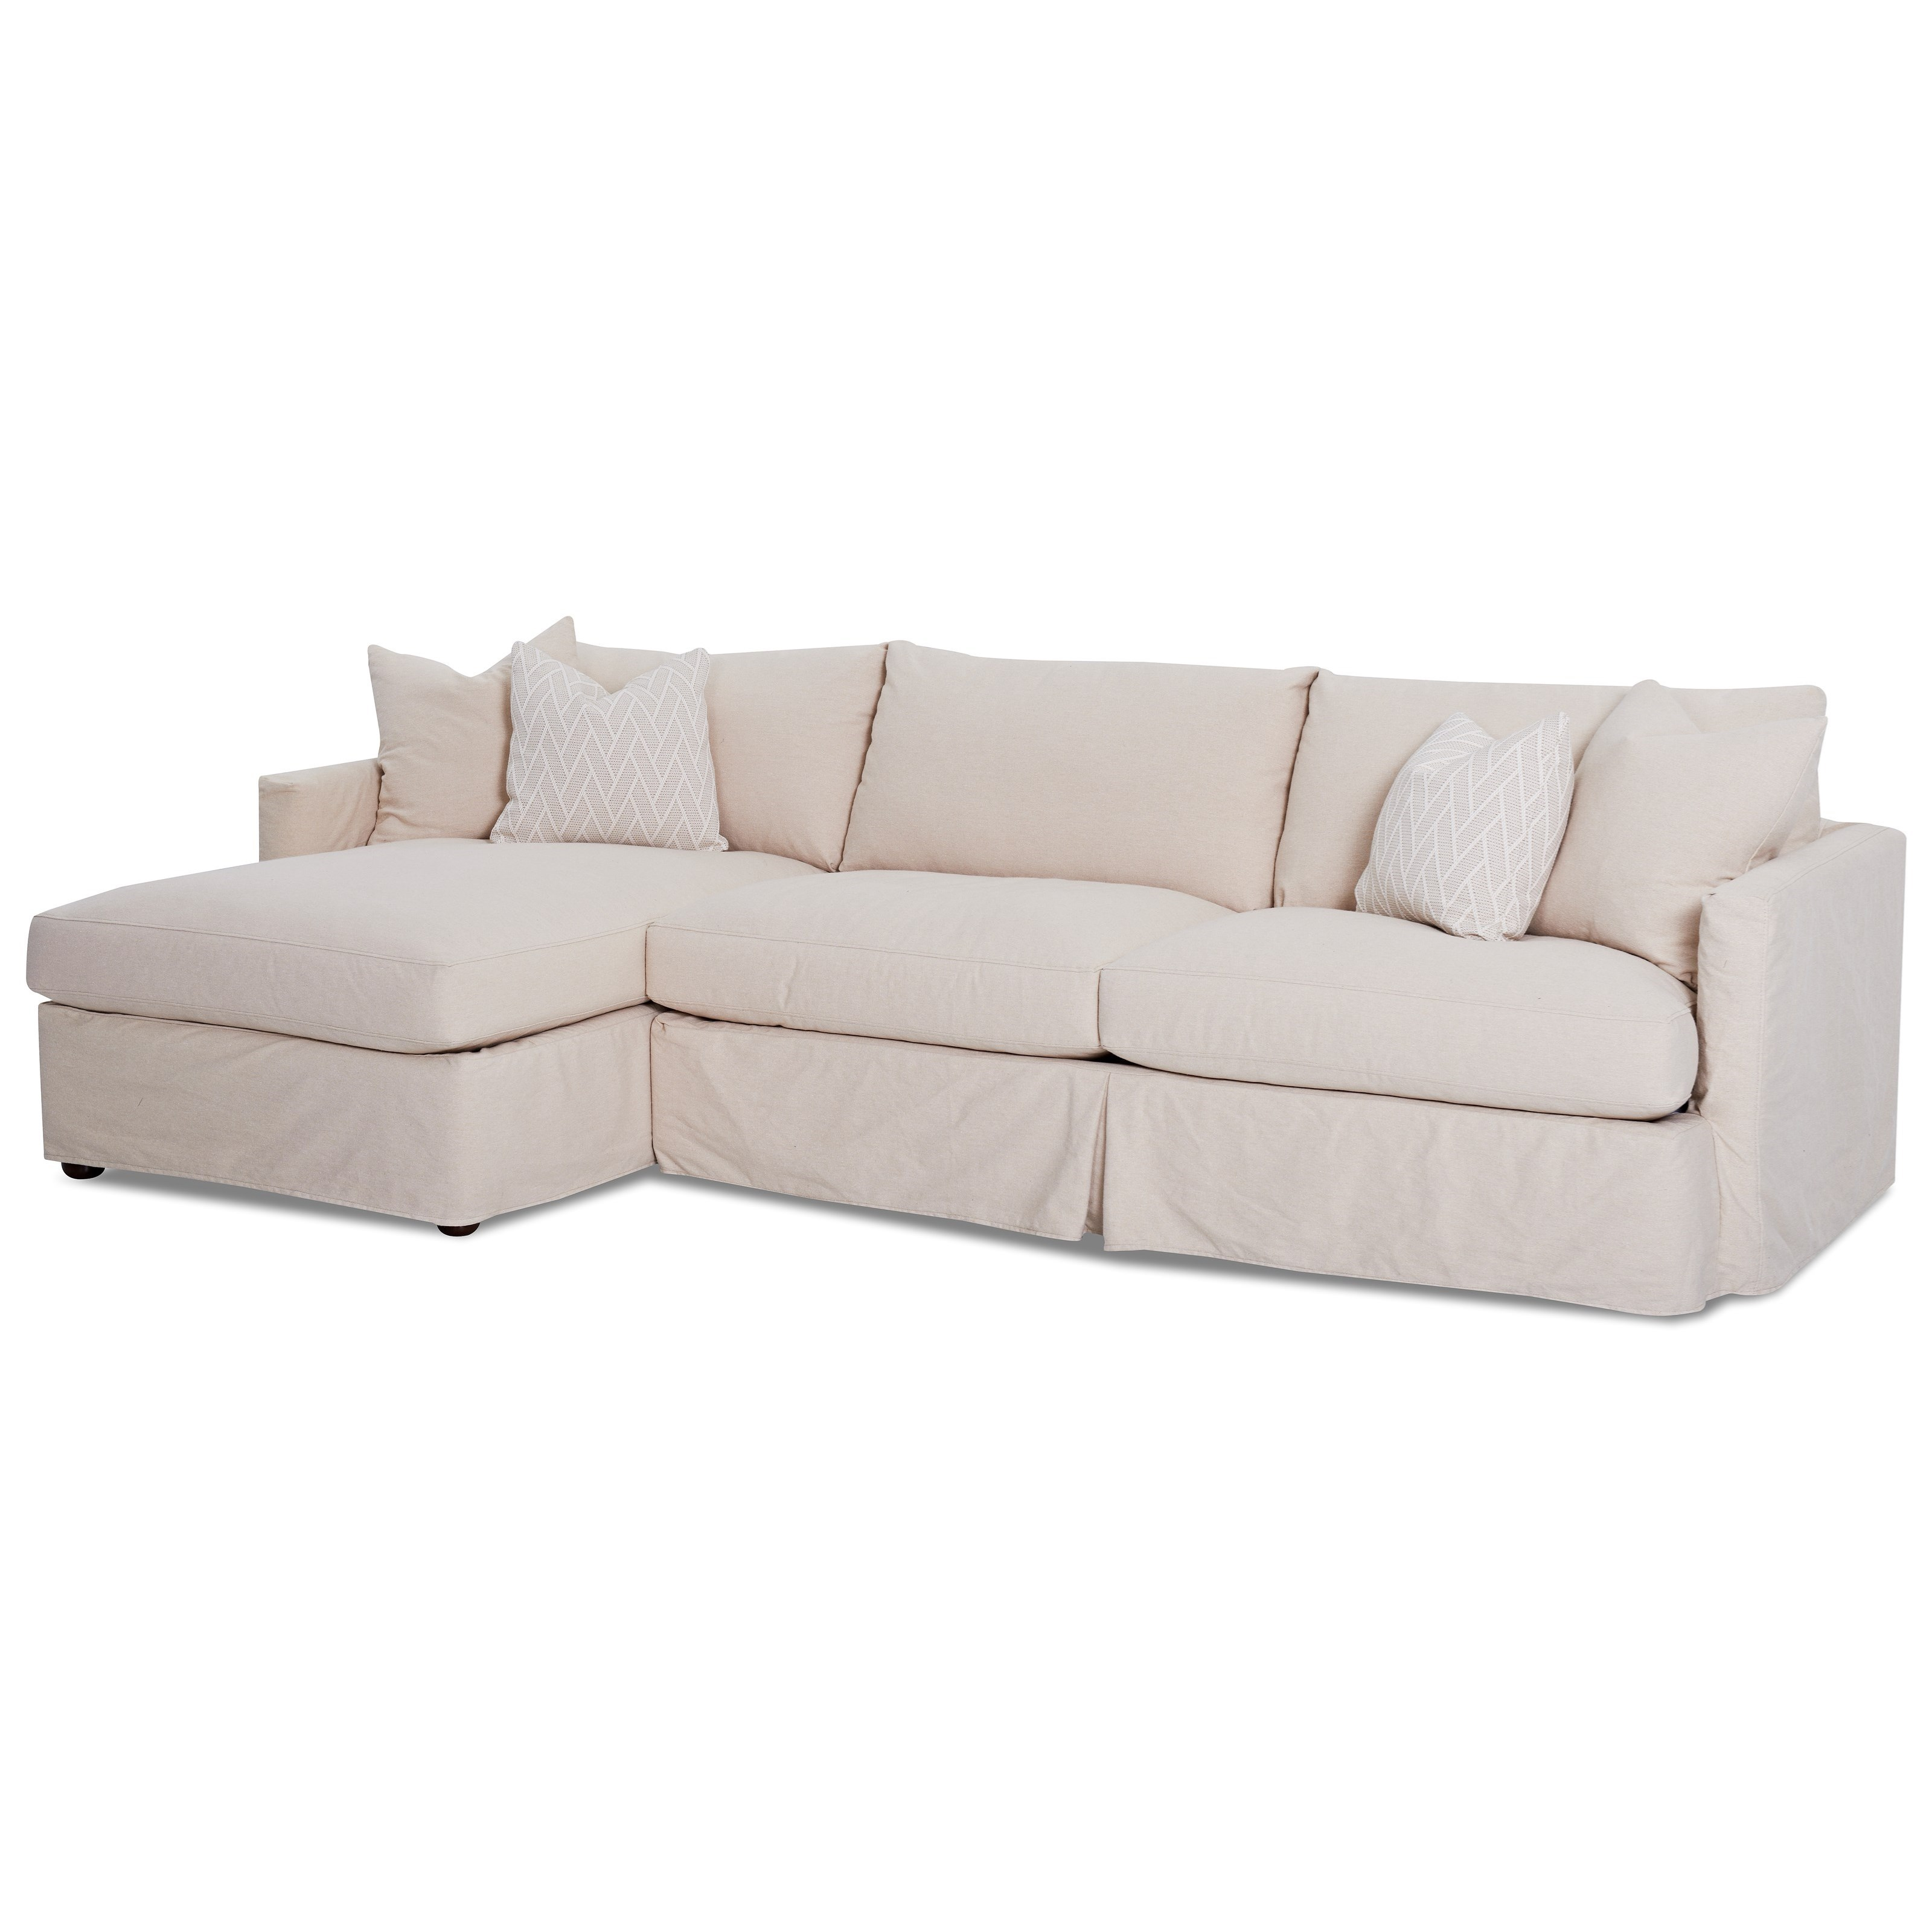 Leisure 2 Pc Sectional Sofa with Slipcover by Klaussner at Catalog Outlet